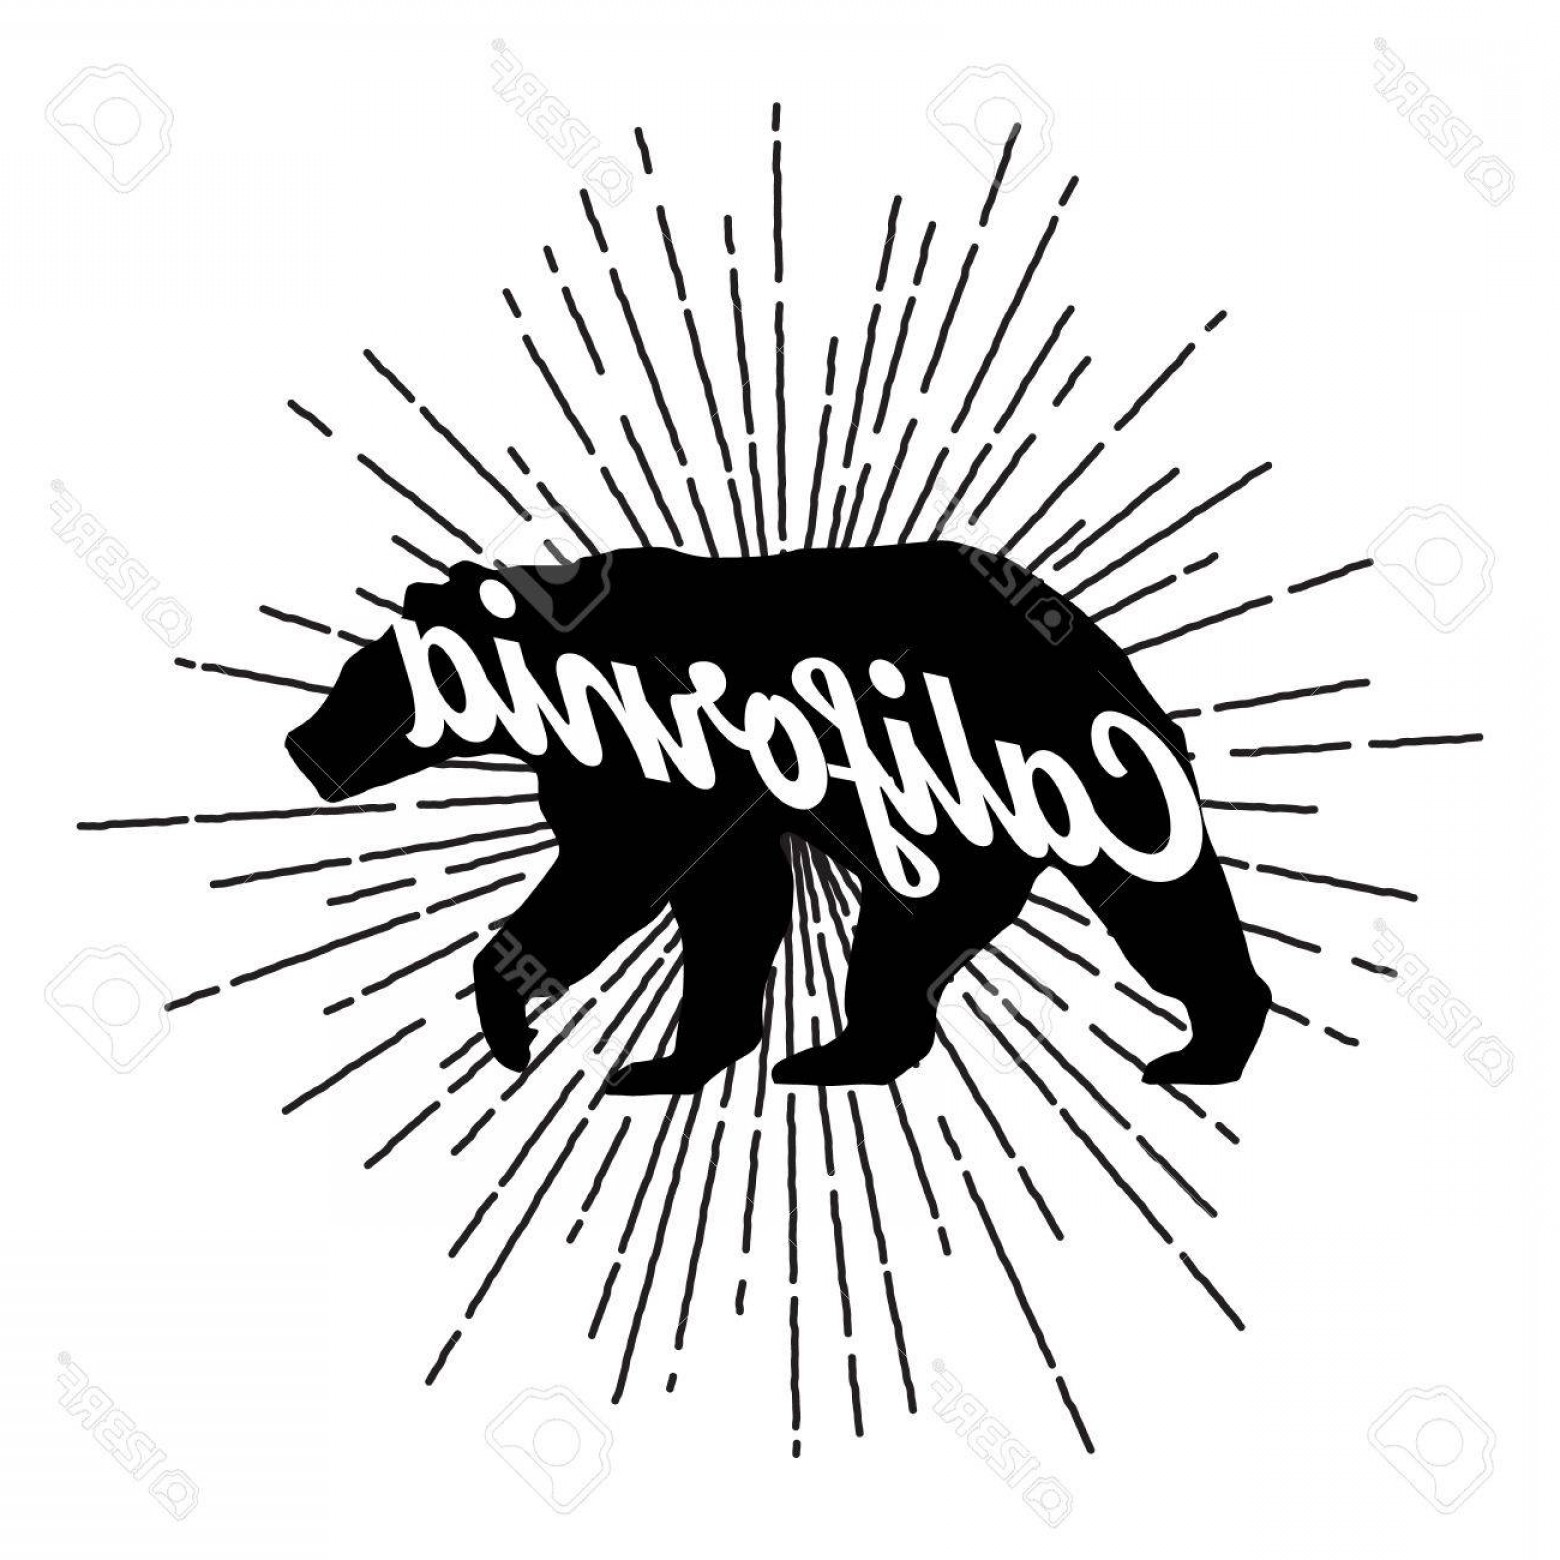 California Black And White Vector: Photostock Vector Vintage California Bear With Sunbursts Vector Graphics And Typography T Shirt Design For Apparel